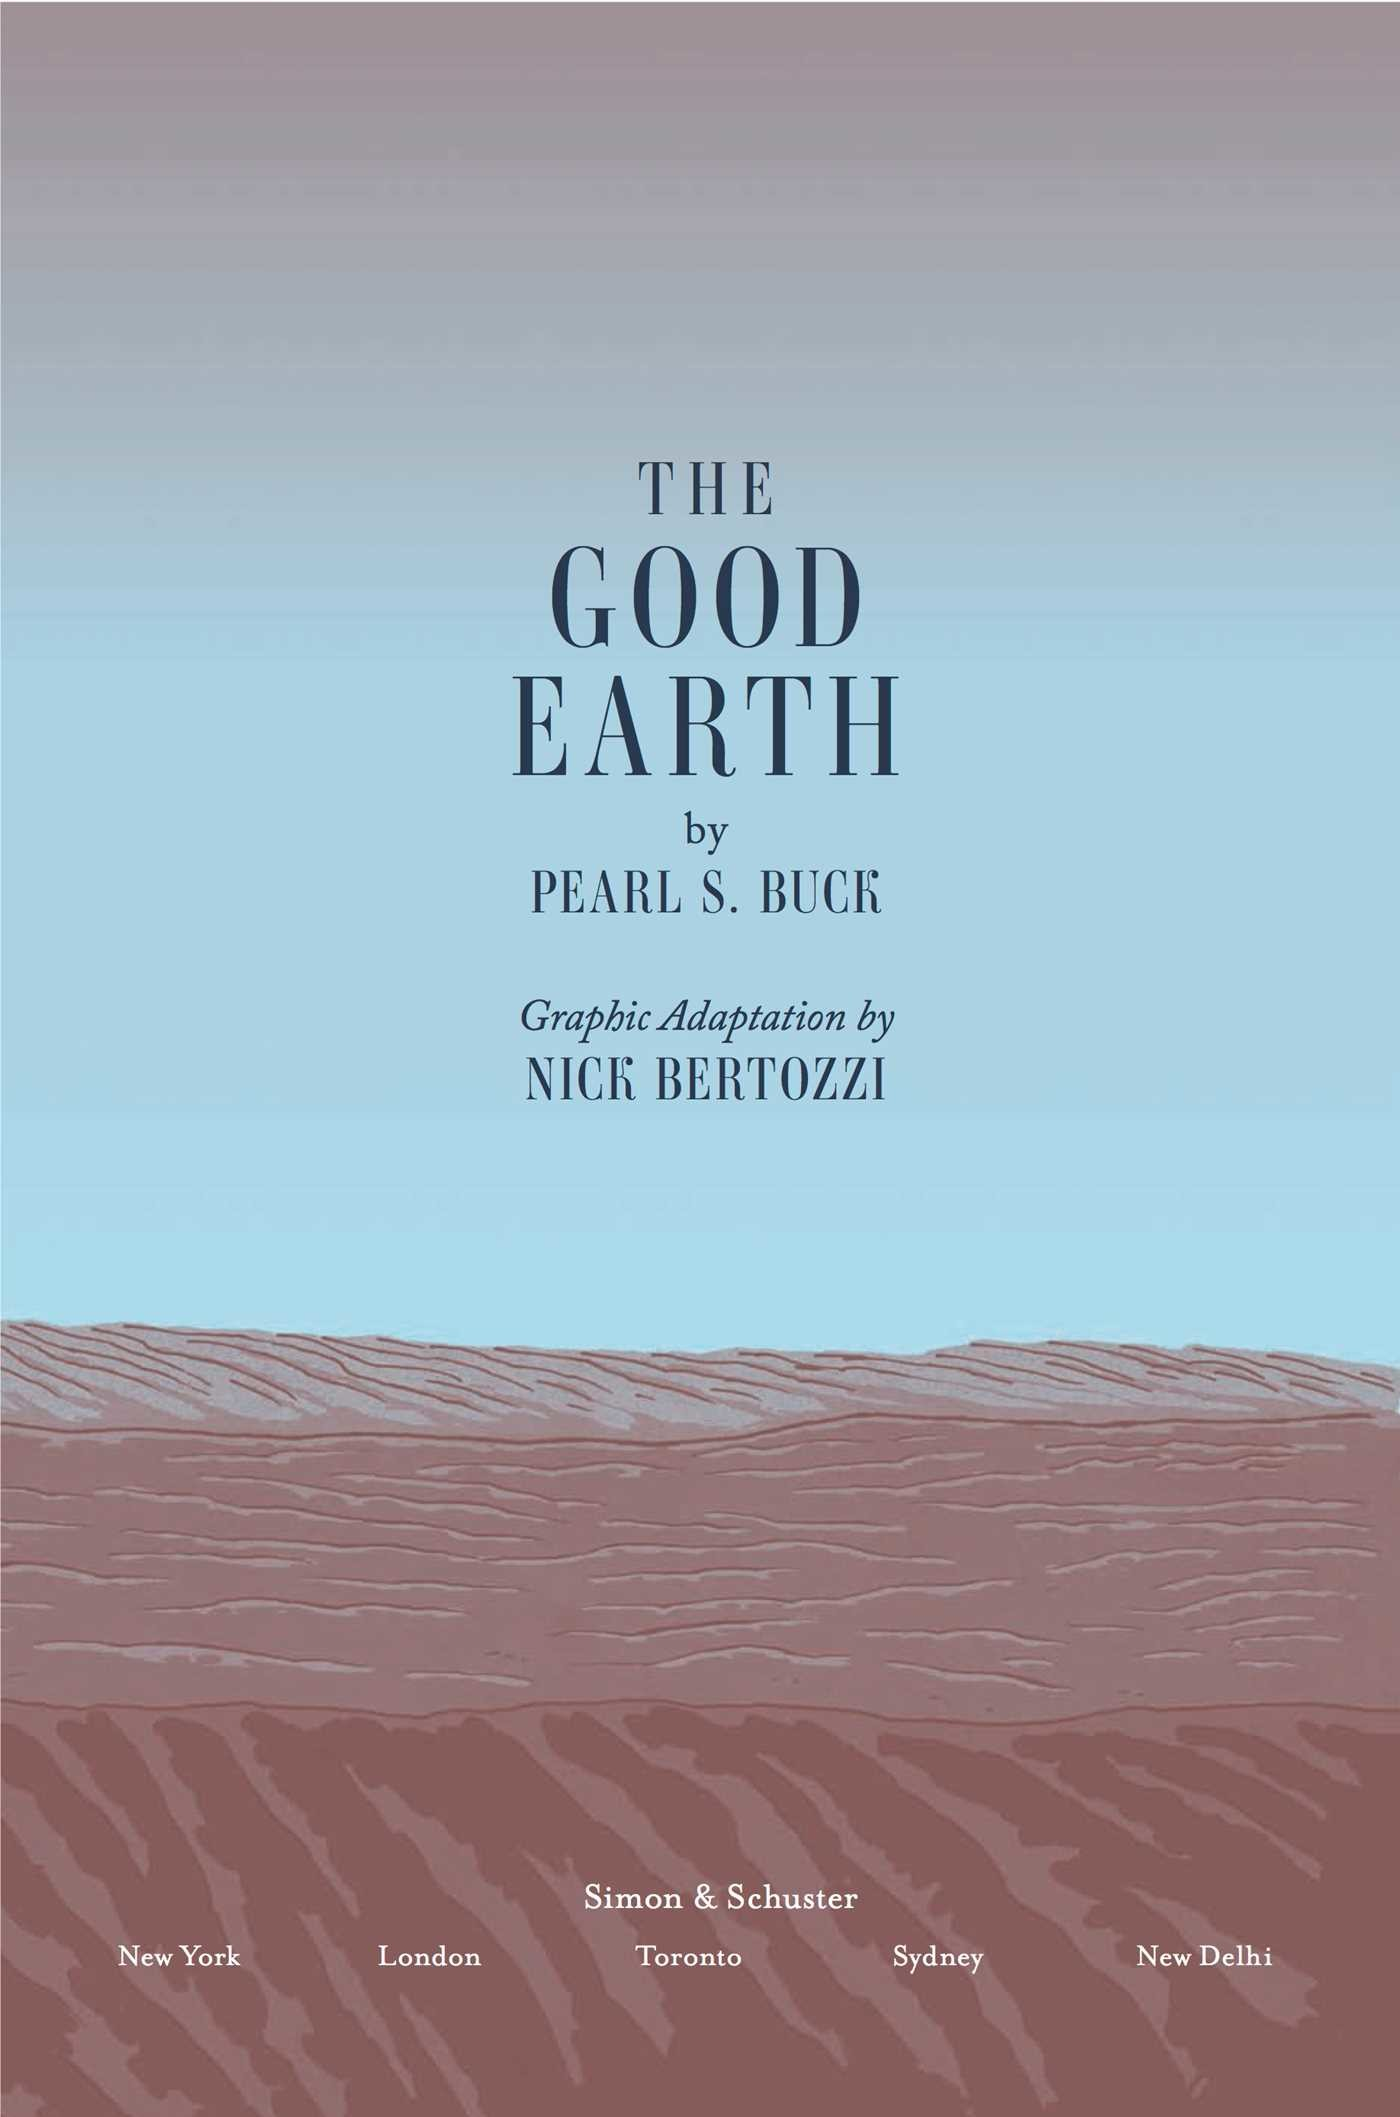 The Good Earth by Pearl S Buck [A Review]